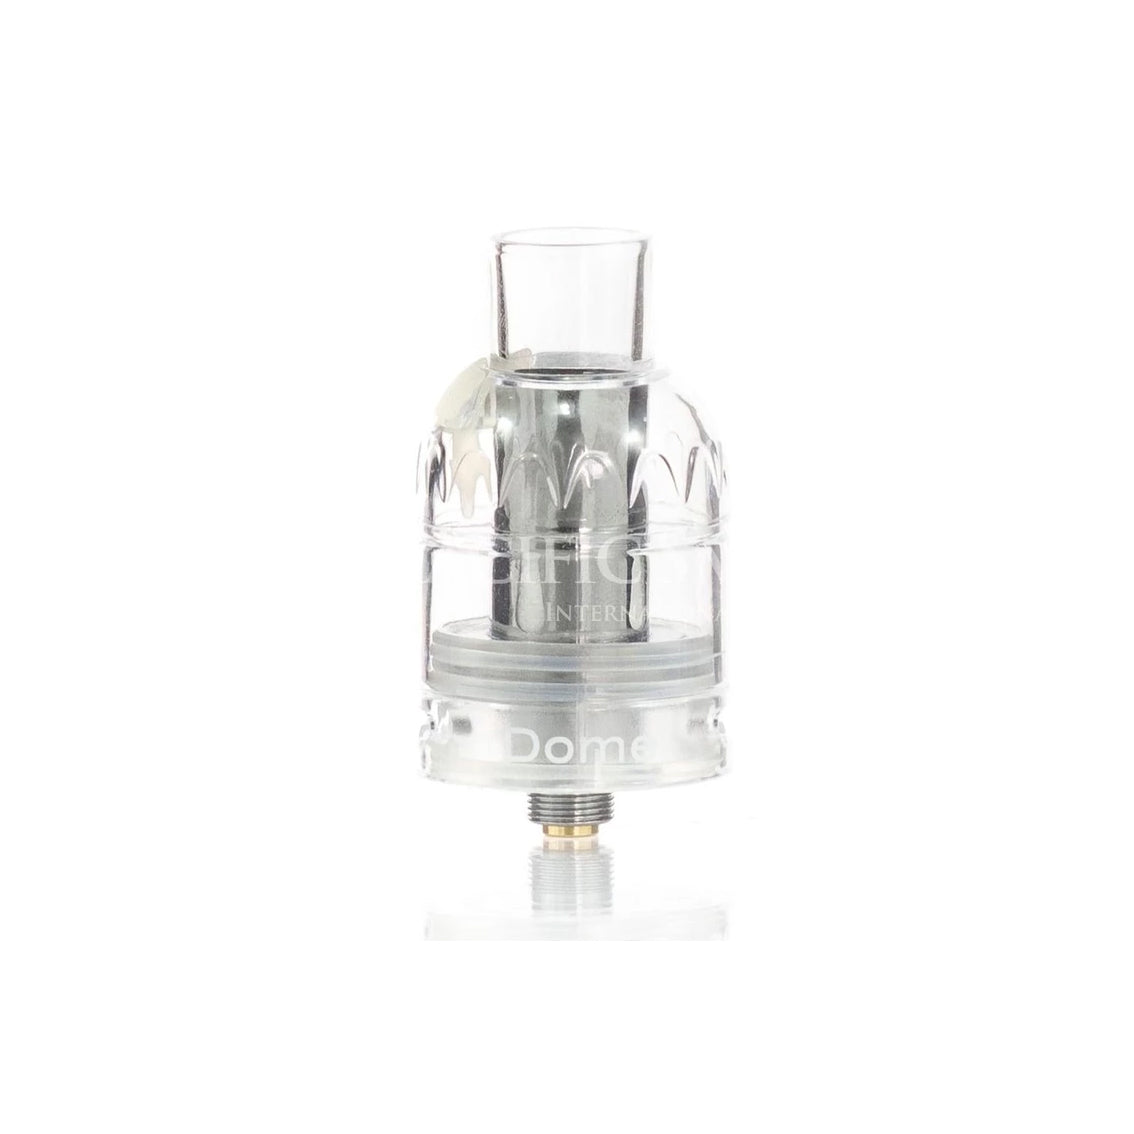 Dome Disposable Mesh Tank 0.18